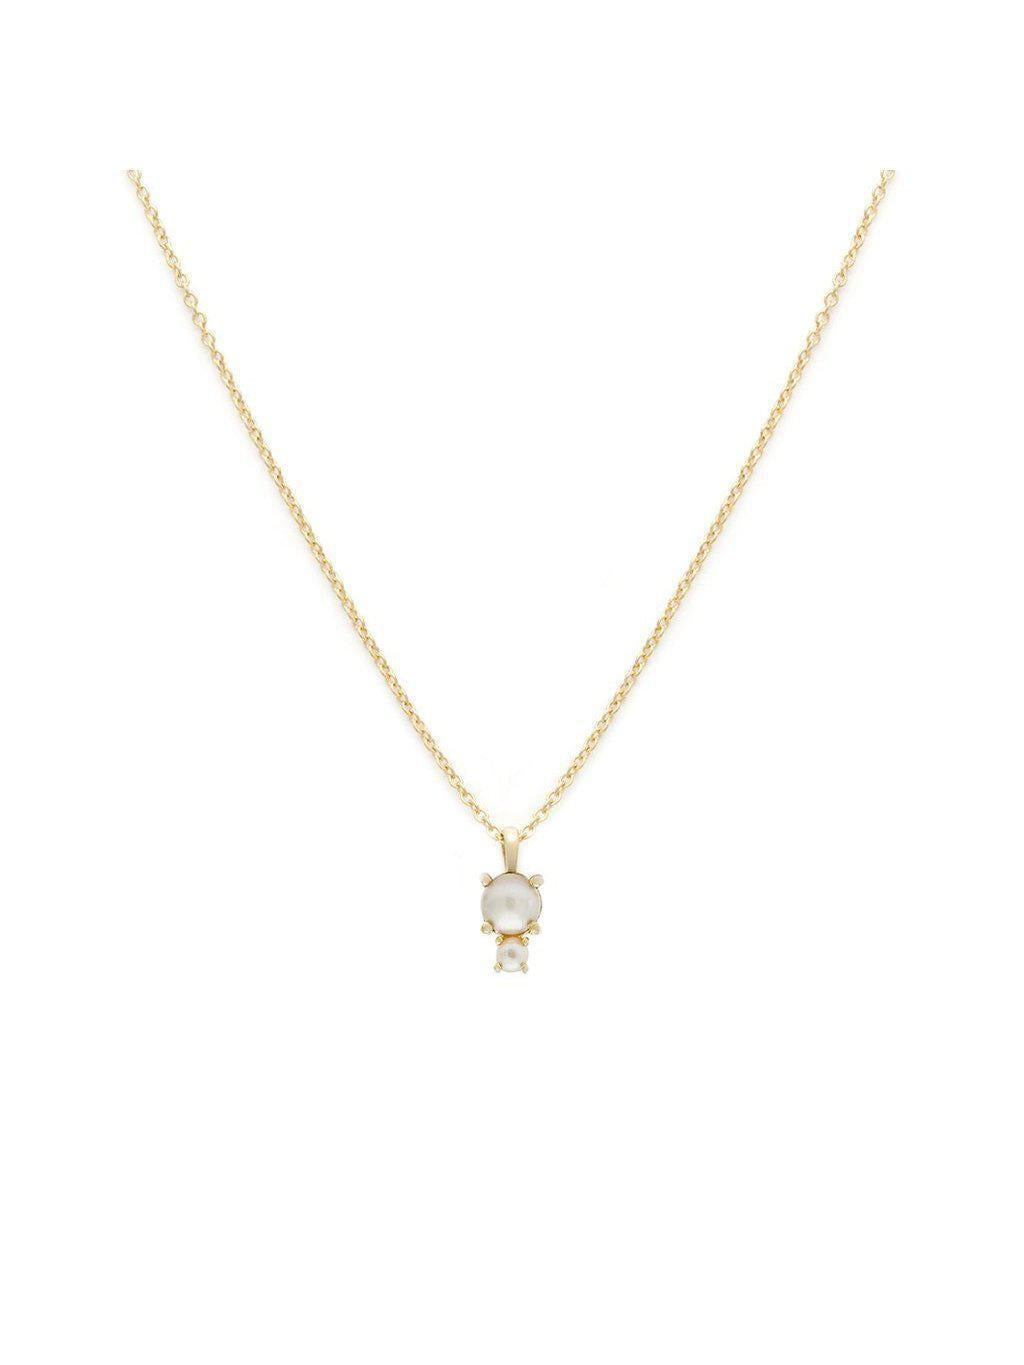 Leah Alexandra Duo Necklace Prl/Gold-Jewerly - Necklace-Sattva Boutique